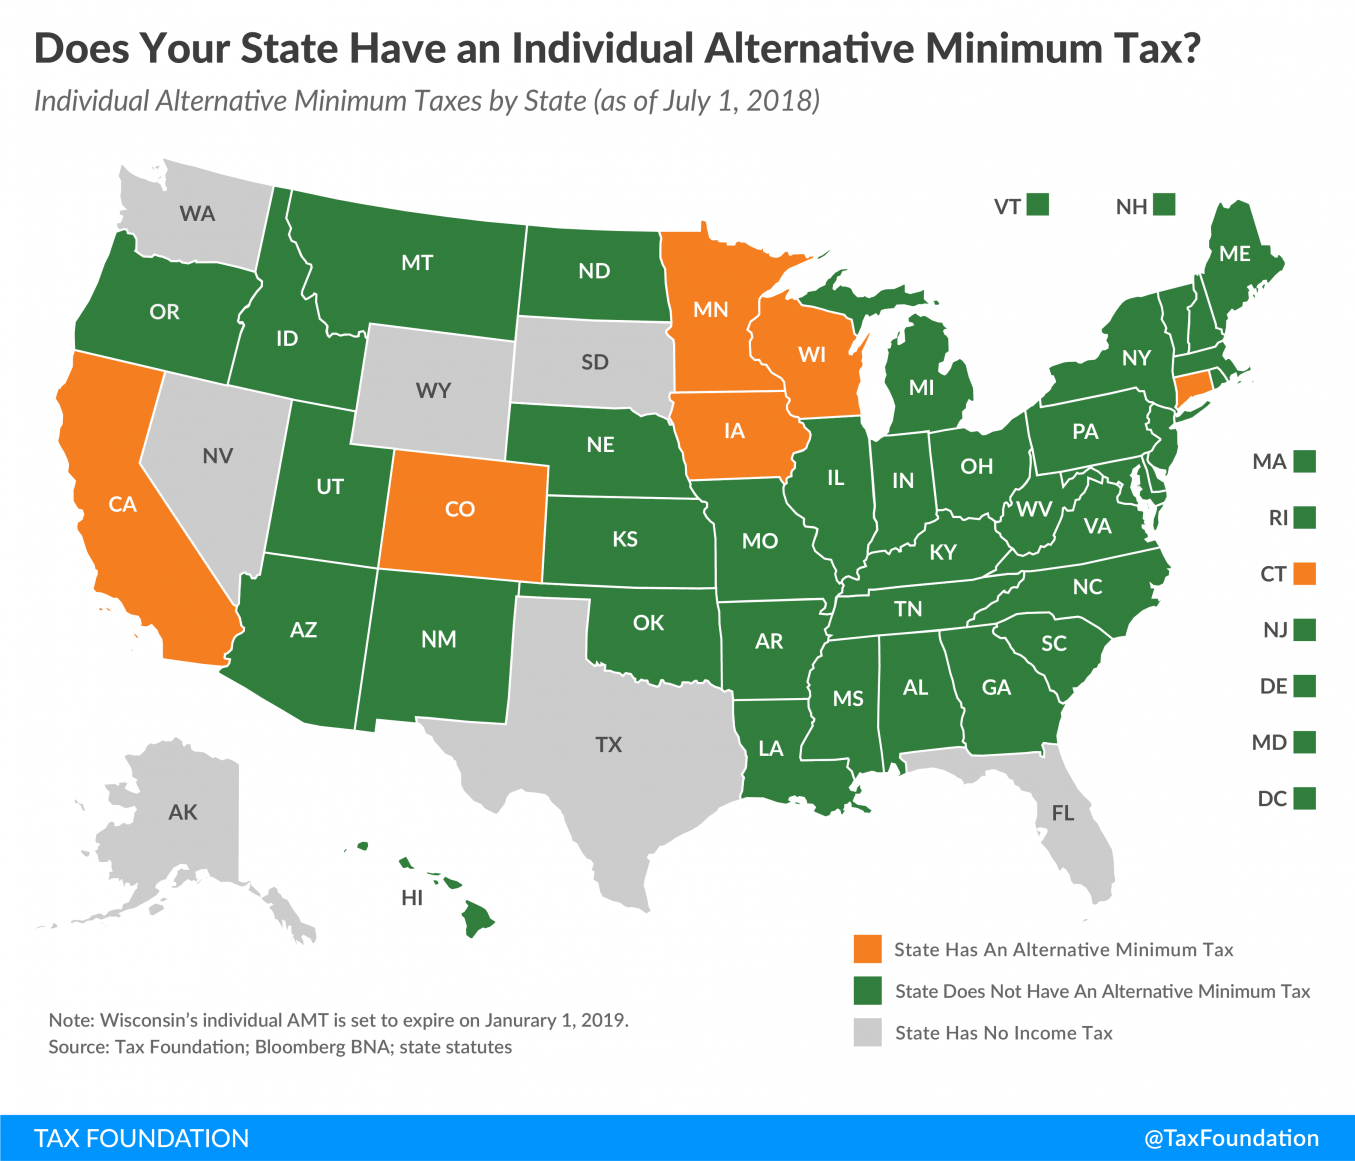 Does Your State Have an Individual Alternative Minimum Tax?